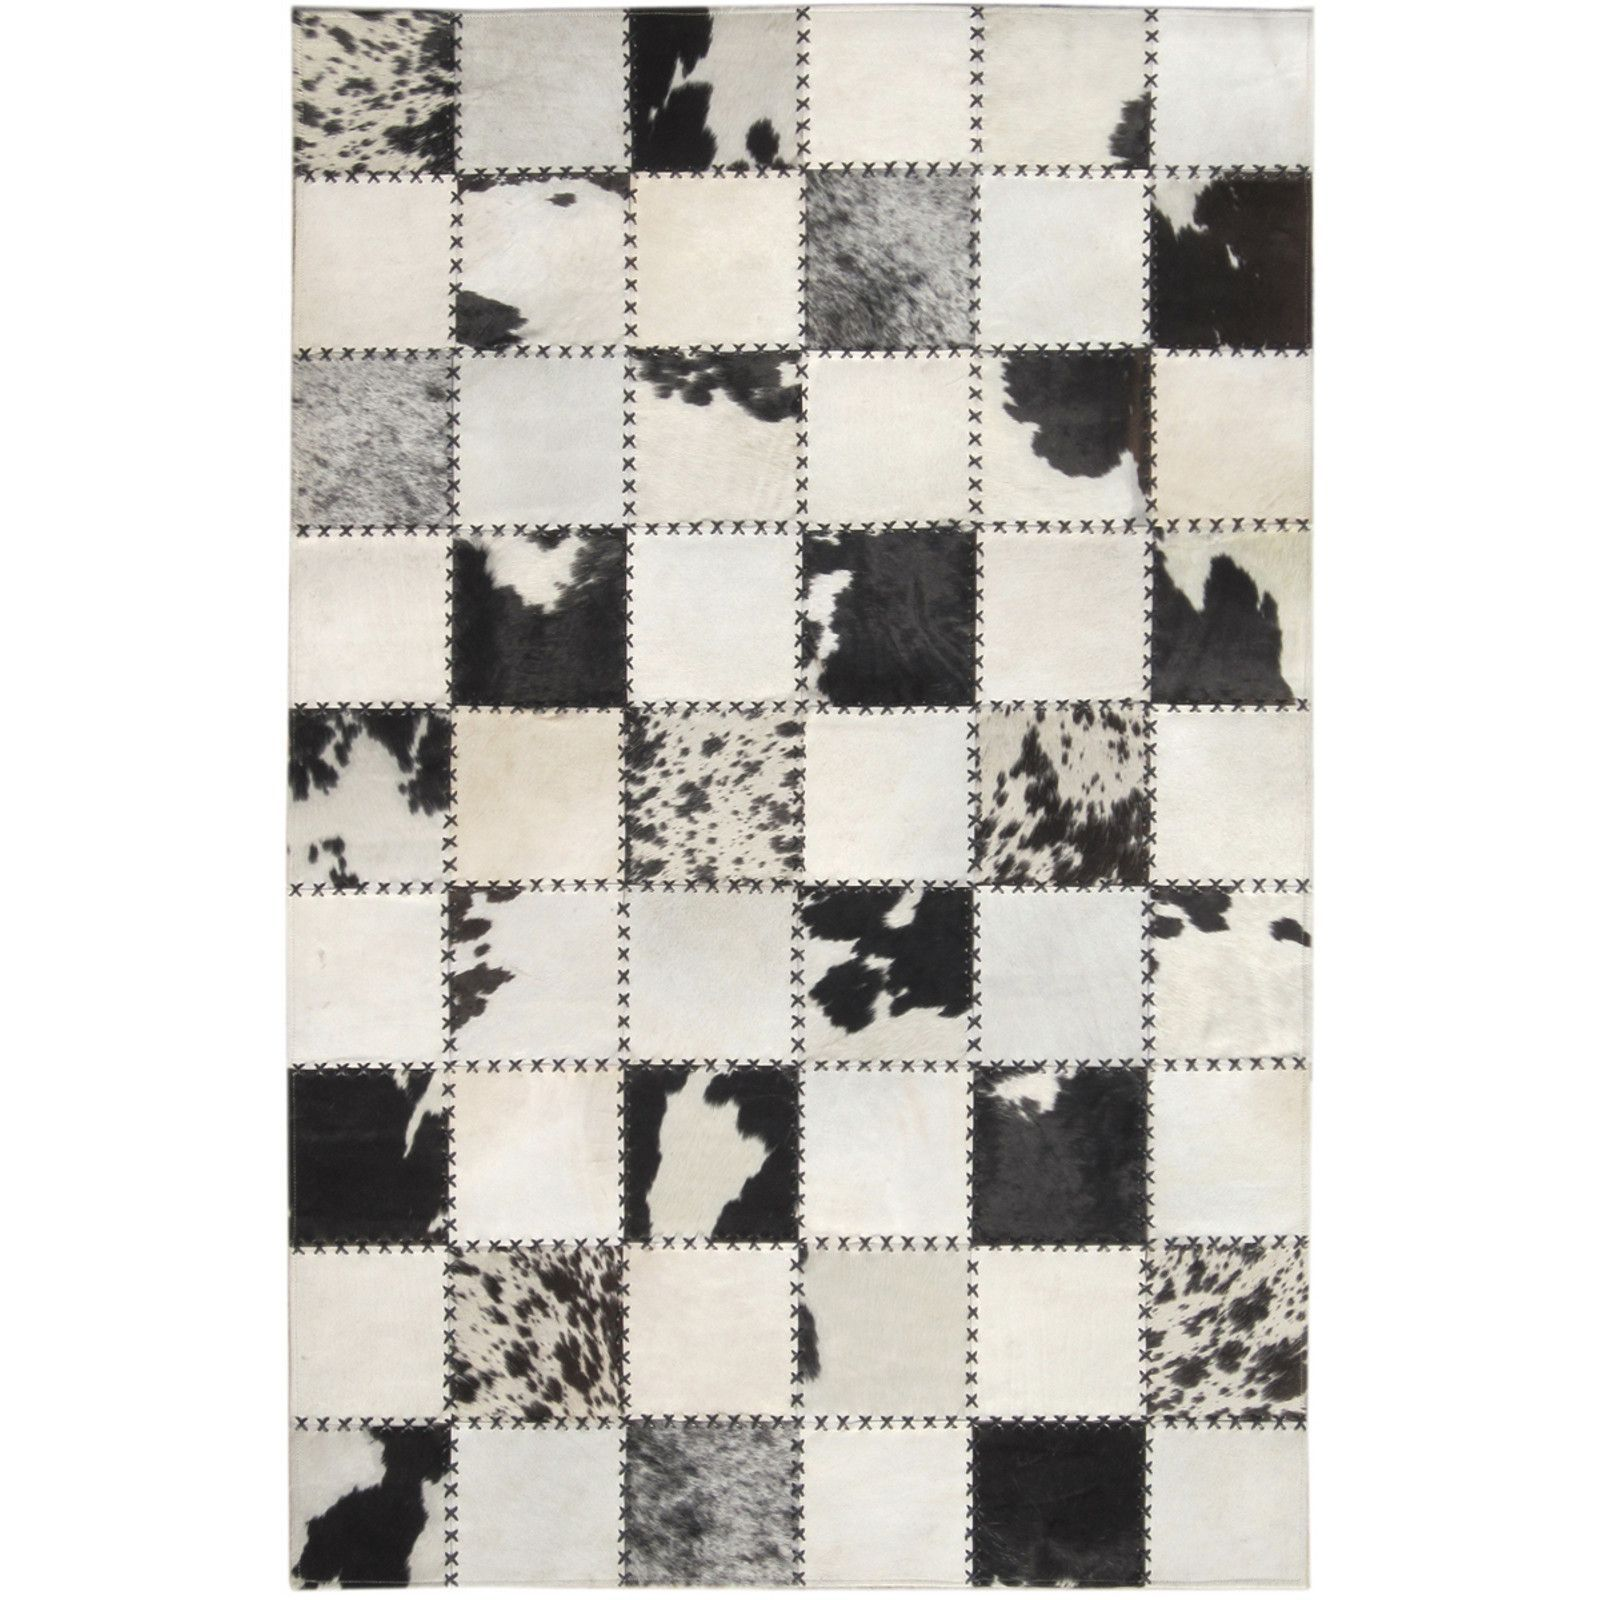 Madisons Black And White Cow Spot Square Pattern Patchwork Cowhide Rug Patchwork Cowhide Rug Patchwork Cowhide Patchwork Leather Rugs